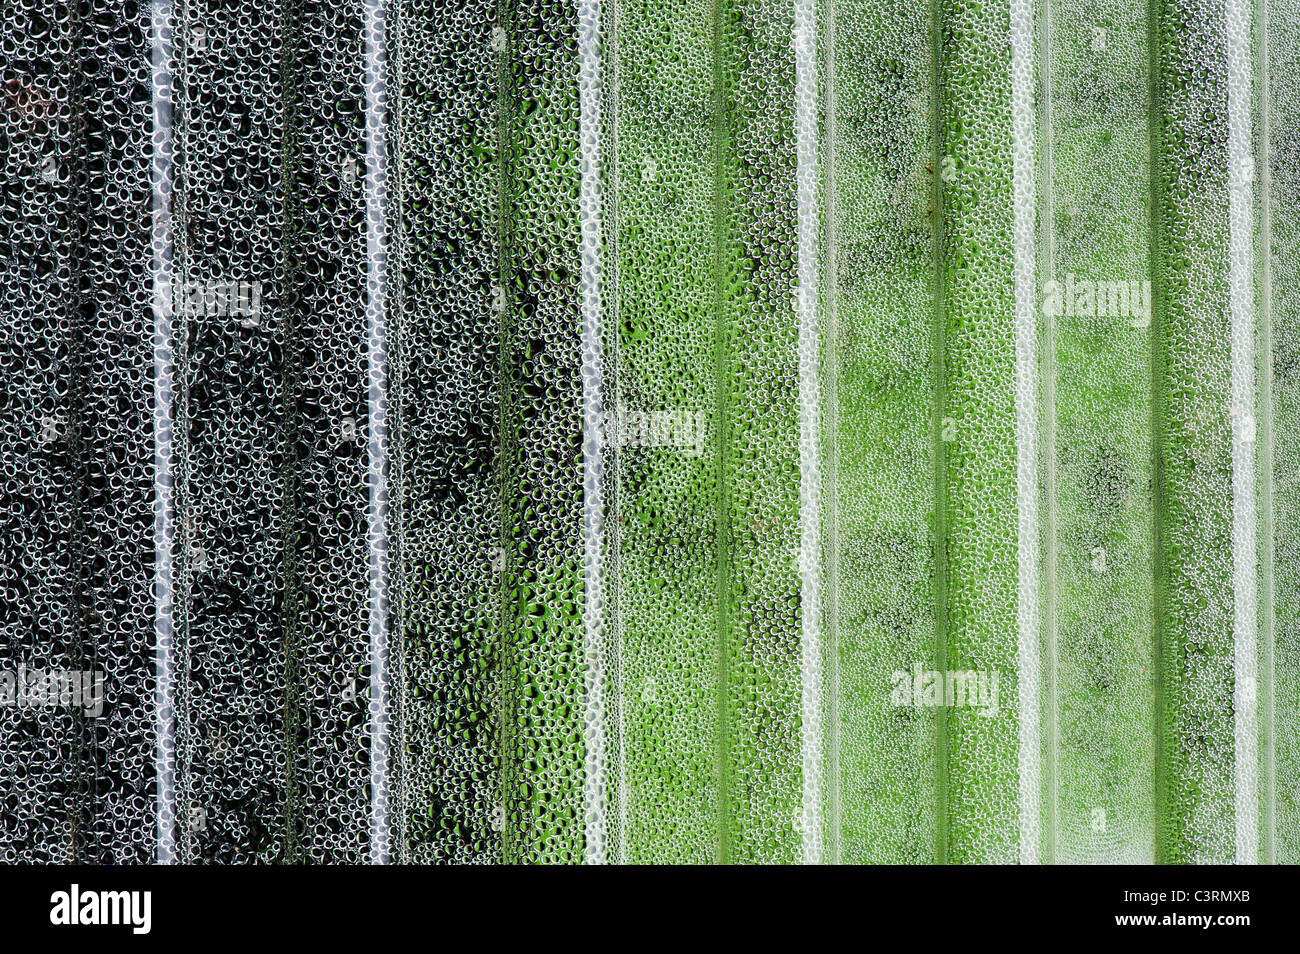 Condensation on a corrugated plastic sheet covering vegetable seedlings - Stock Image